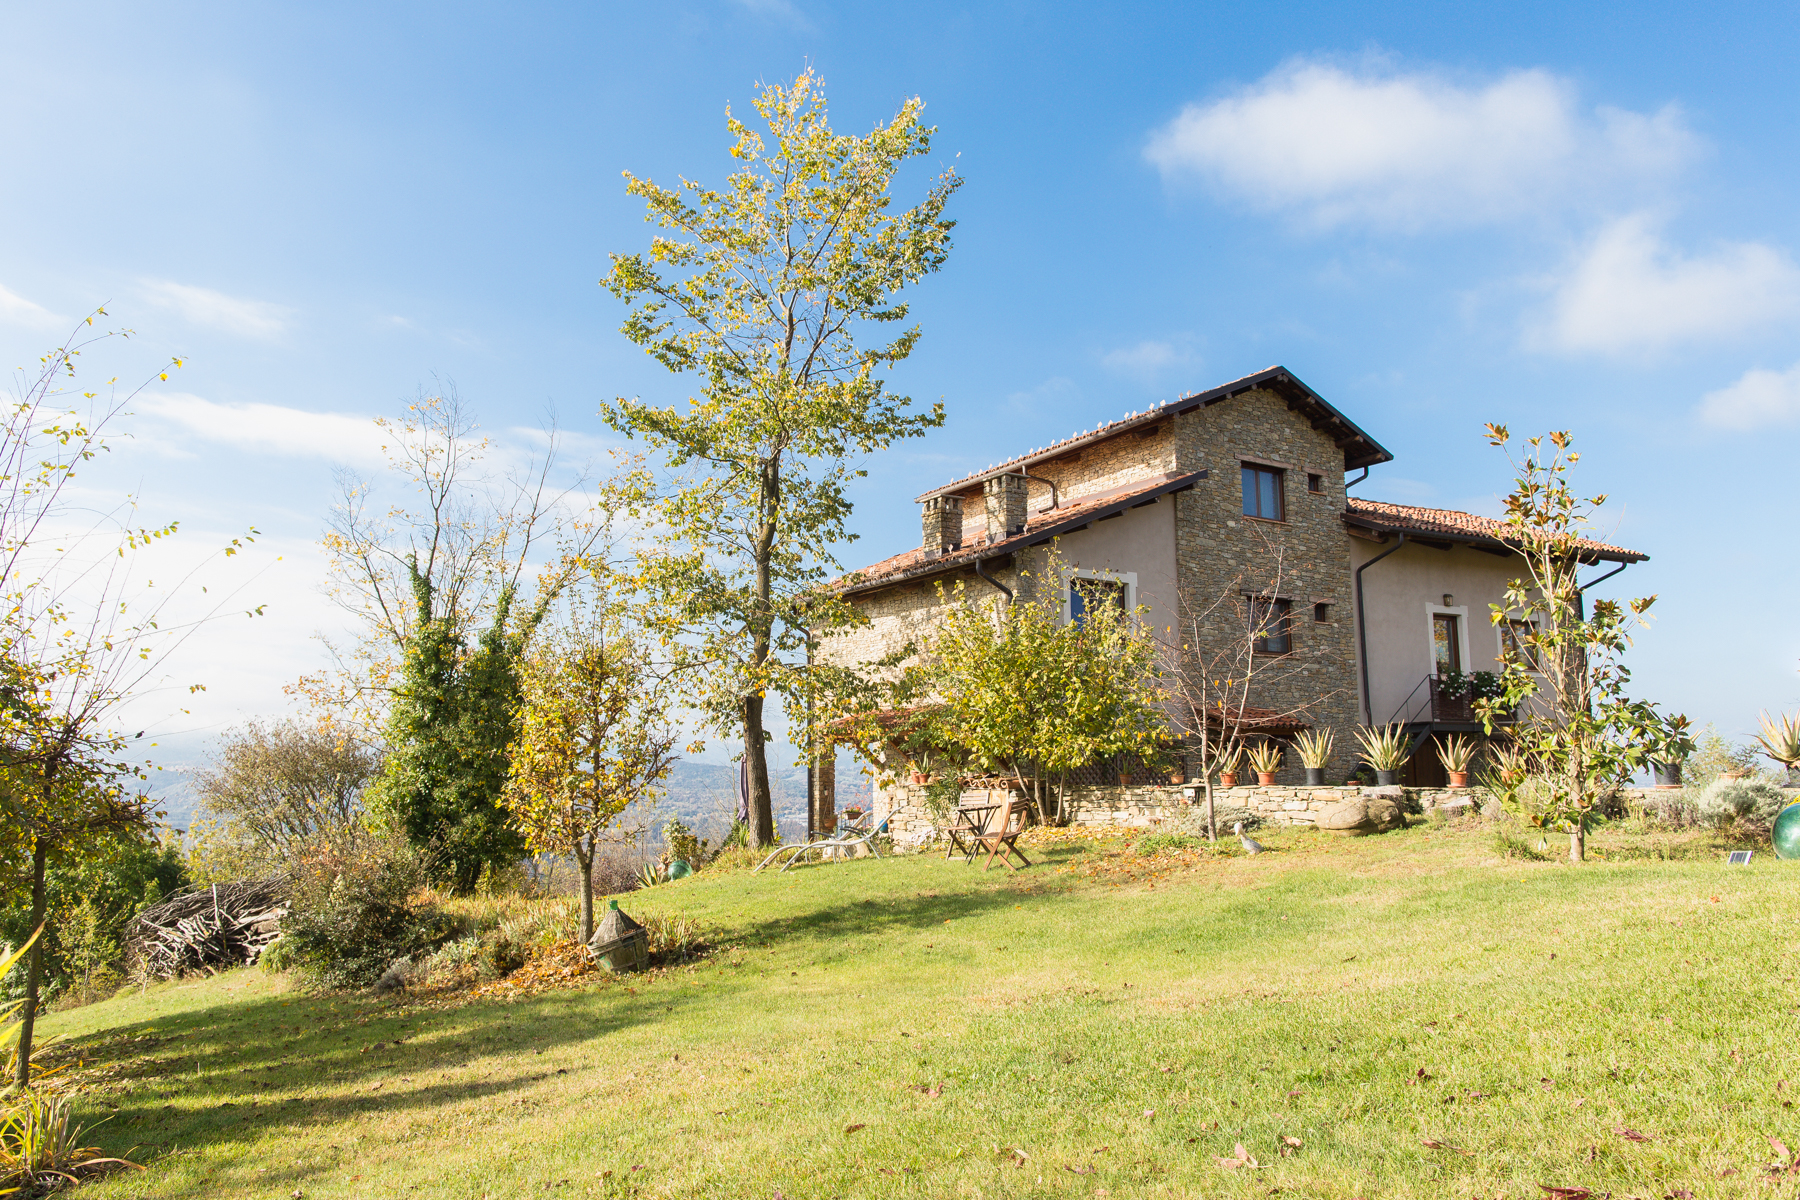 Single Family Home for Sale at Cozy Country Home overlooking the Langhe Località Monaca Other Cuneo, Cuneo 12060 Italy